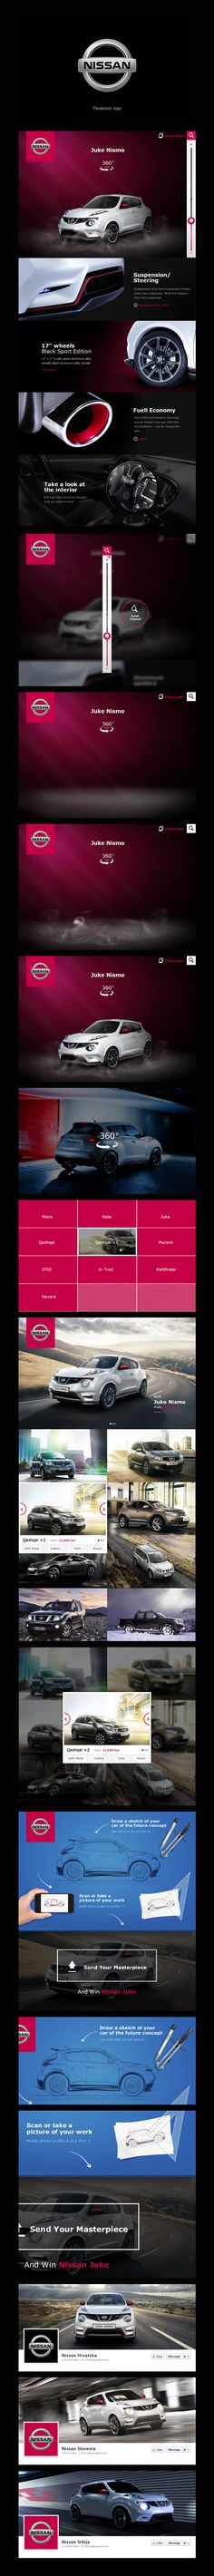 Nissan Facebook App by Nemanja Ivanovic, via Behance *** Huge Media Agency hired me to create a concept for Nissan campaign for South-East Europe, and how it would look like on Facebook.